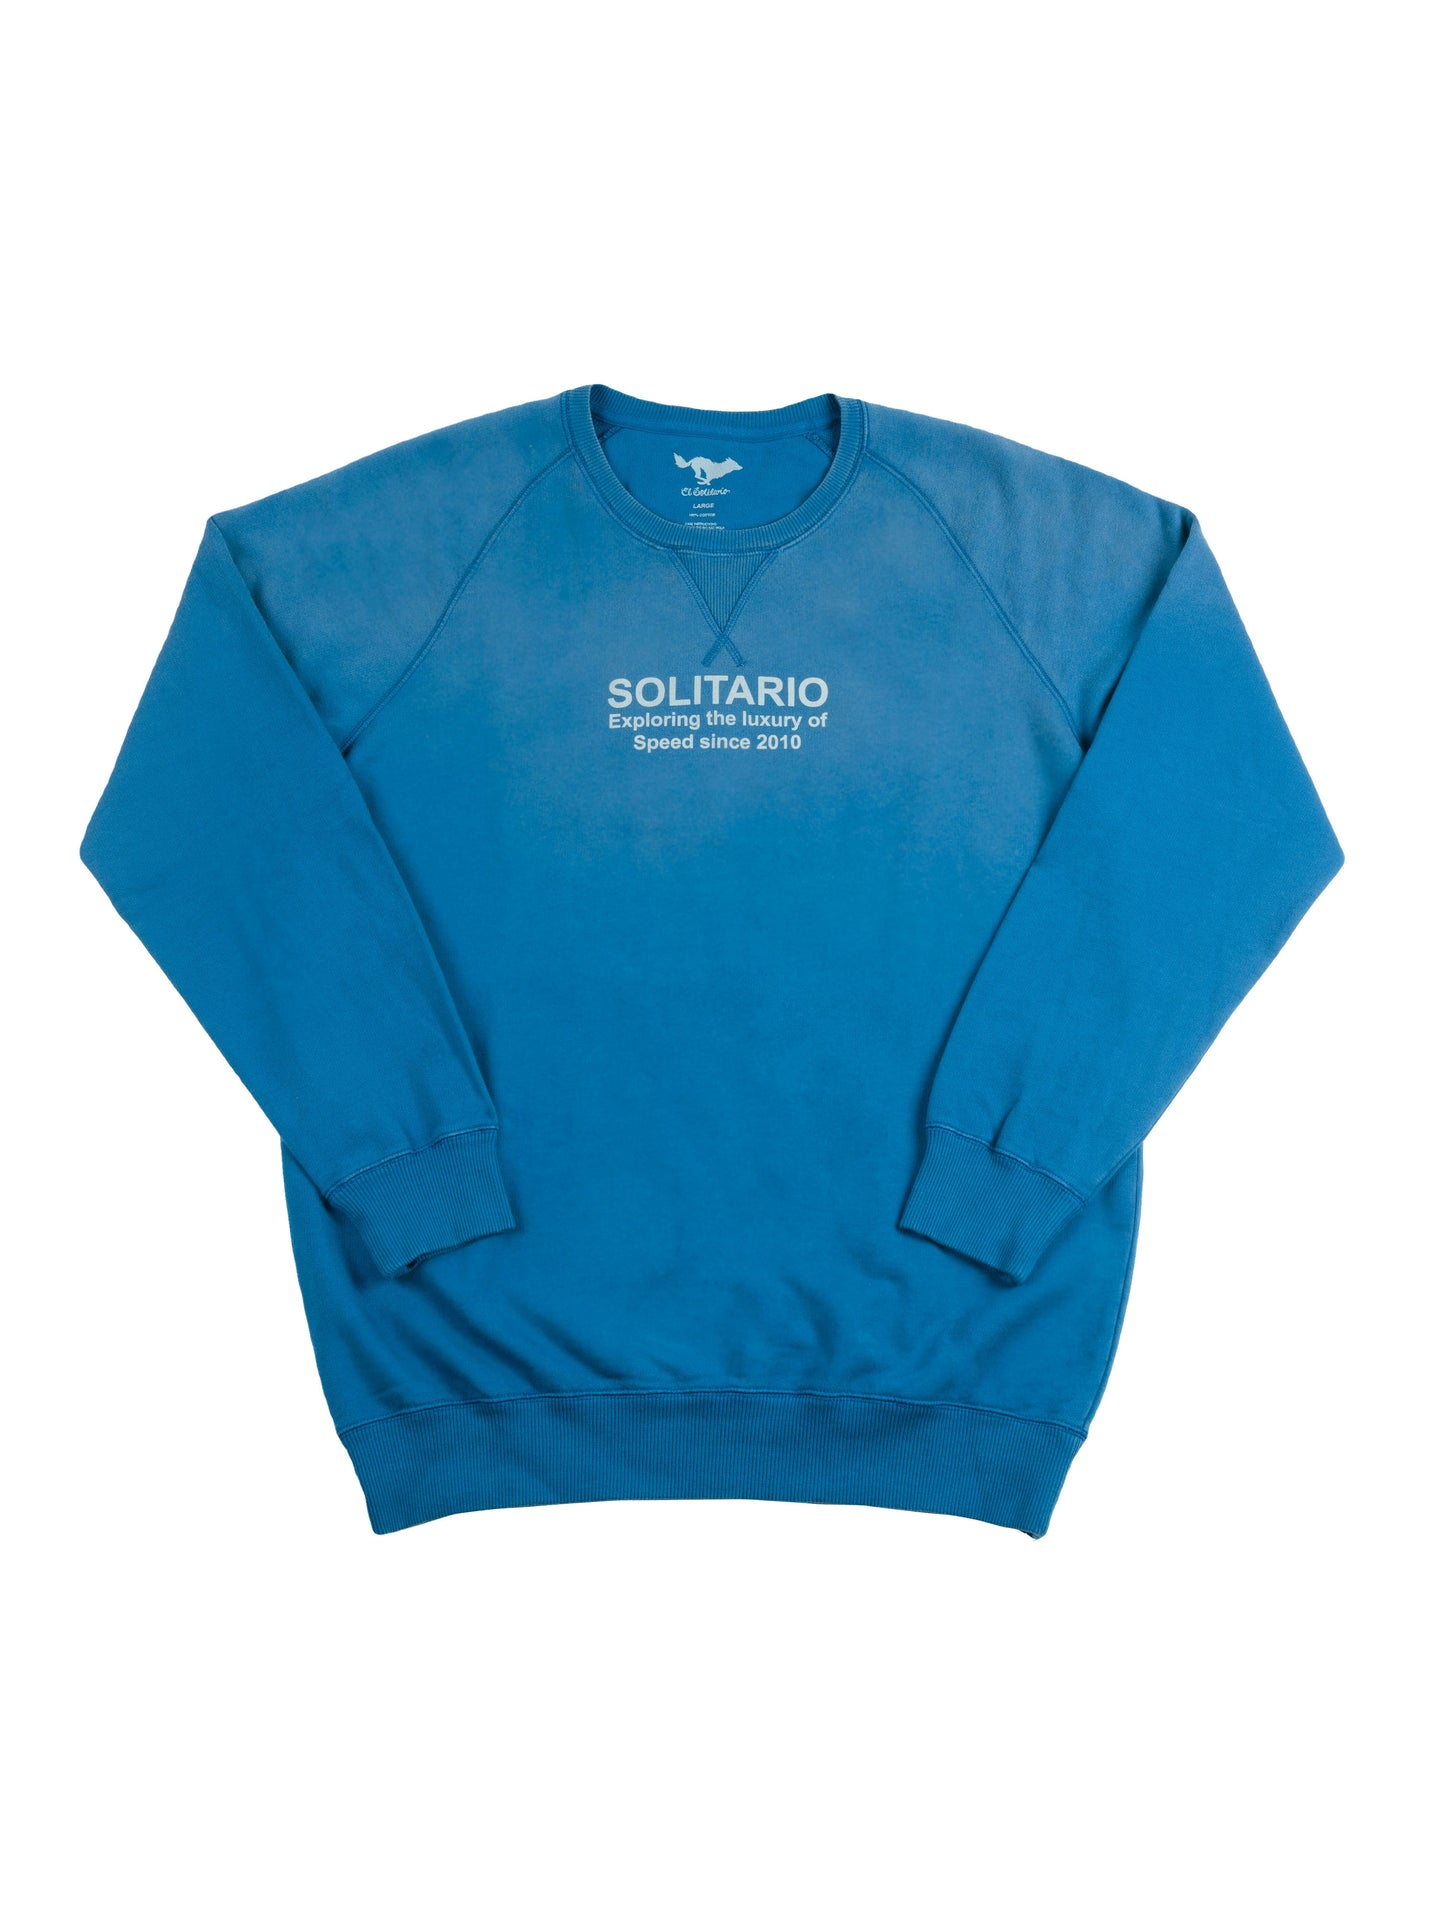 El Solitario Luxury of Speed Sweatshirt. Front